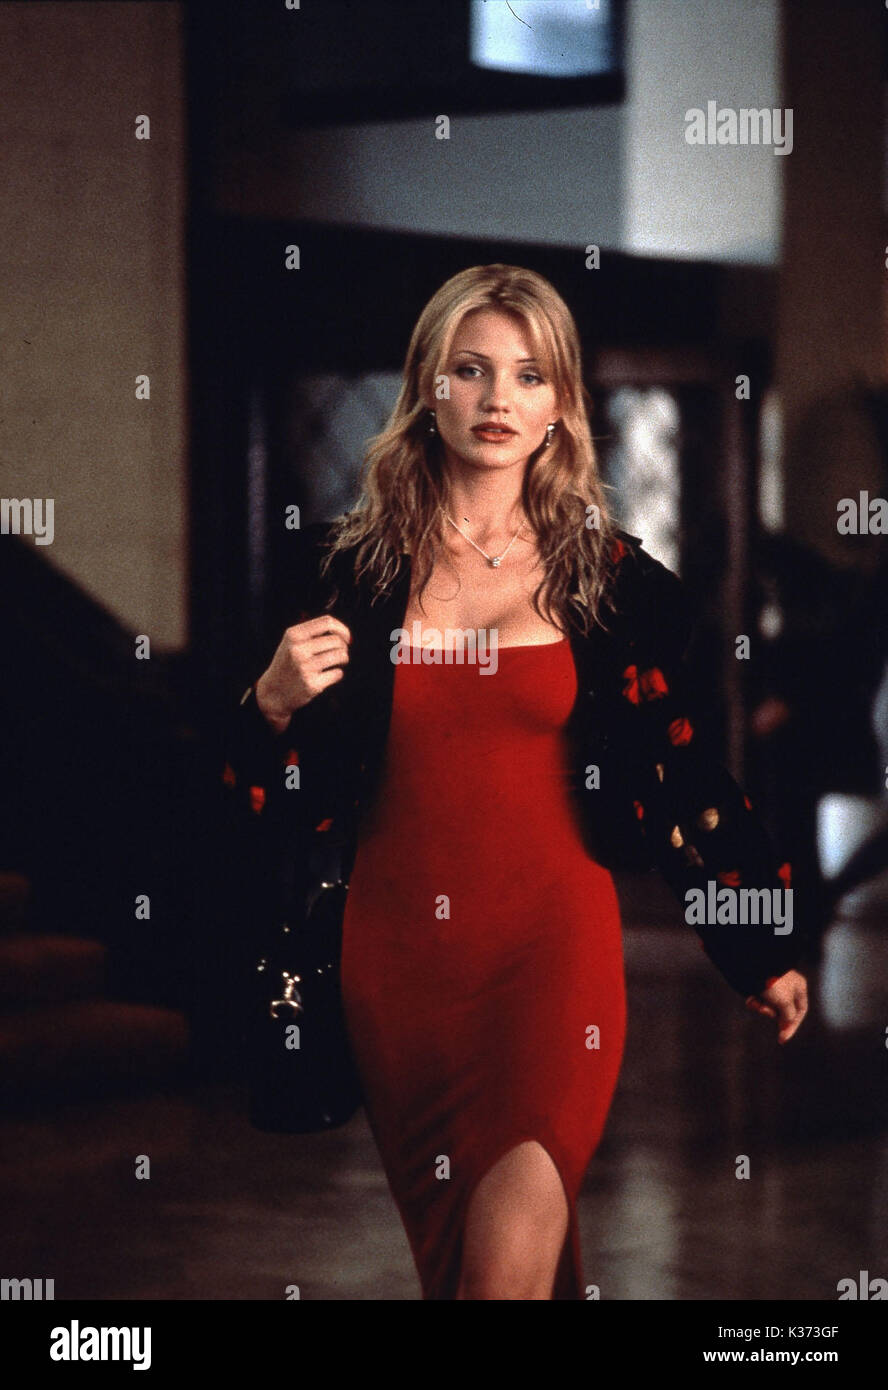 THE MASK CAMERON DIAZ Date: 1994 Stock Photo: 156893759 ...